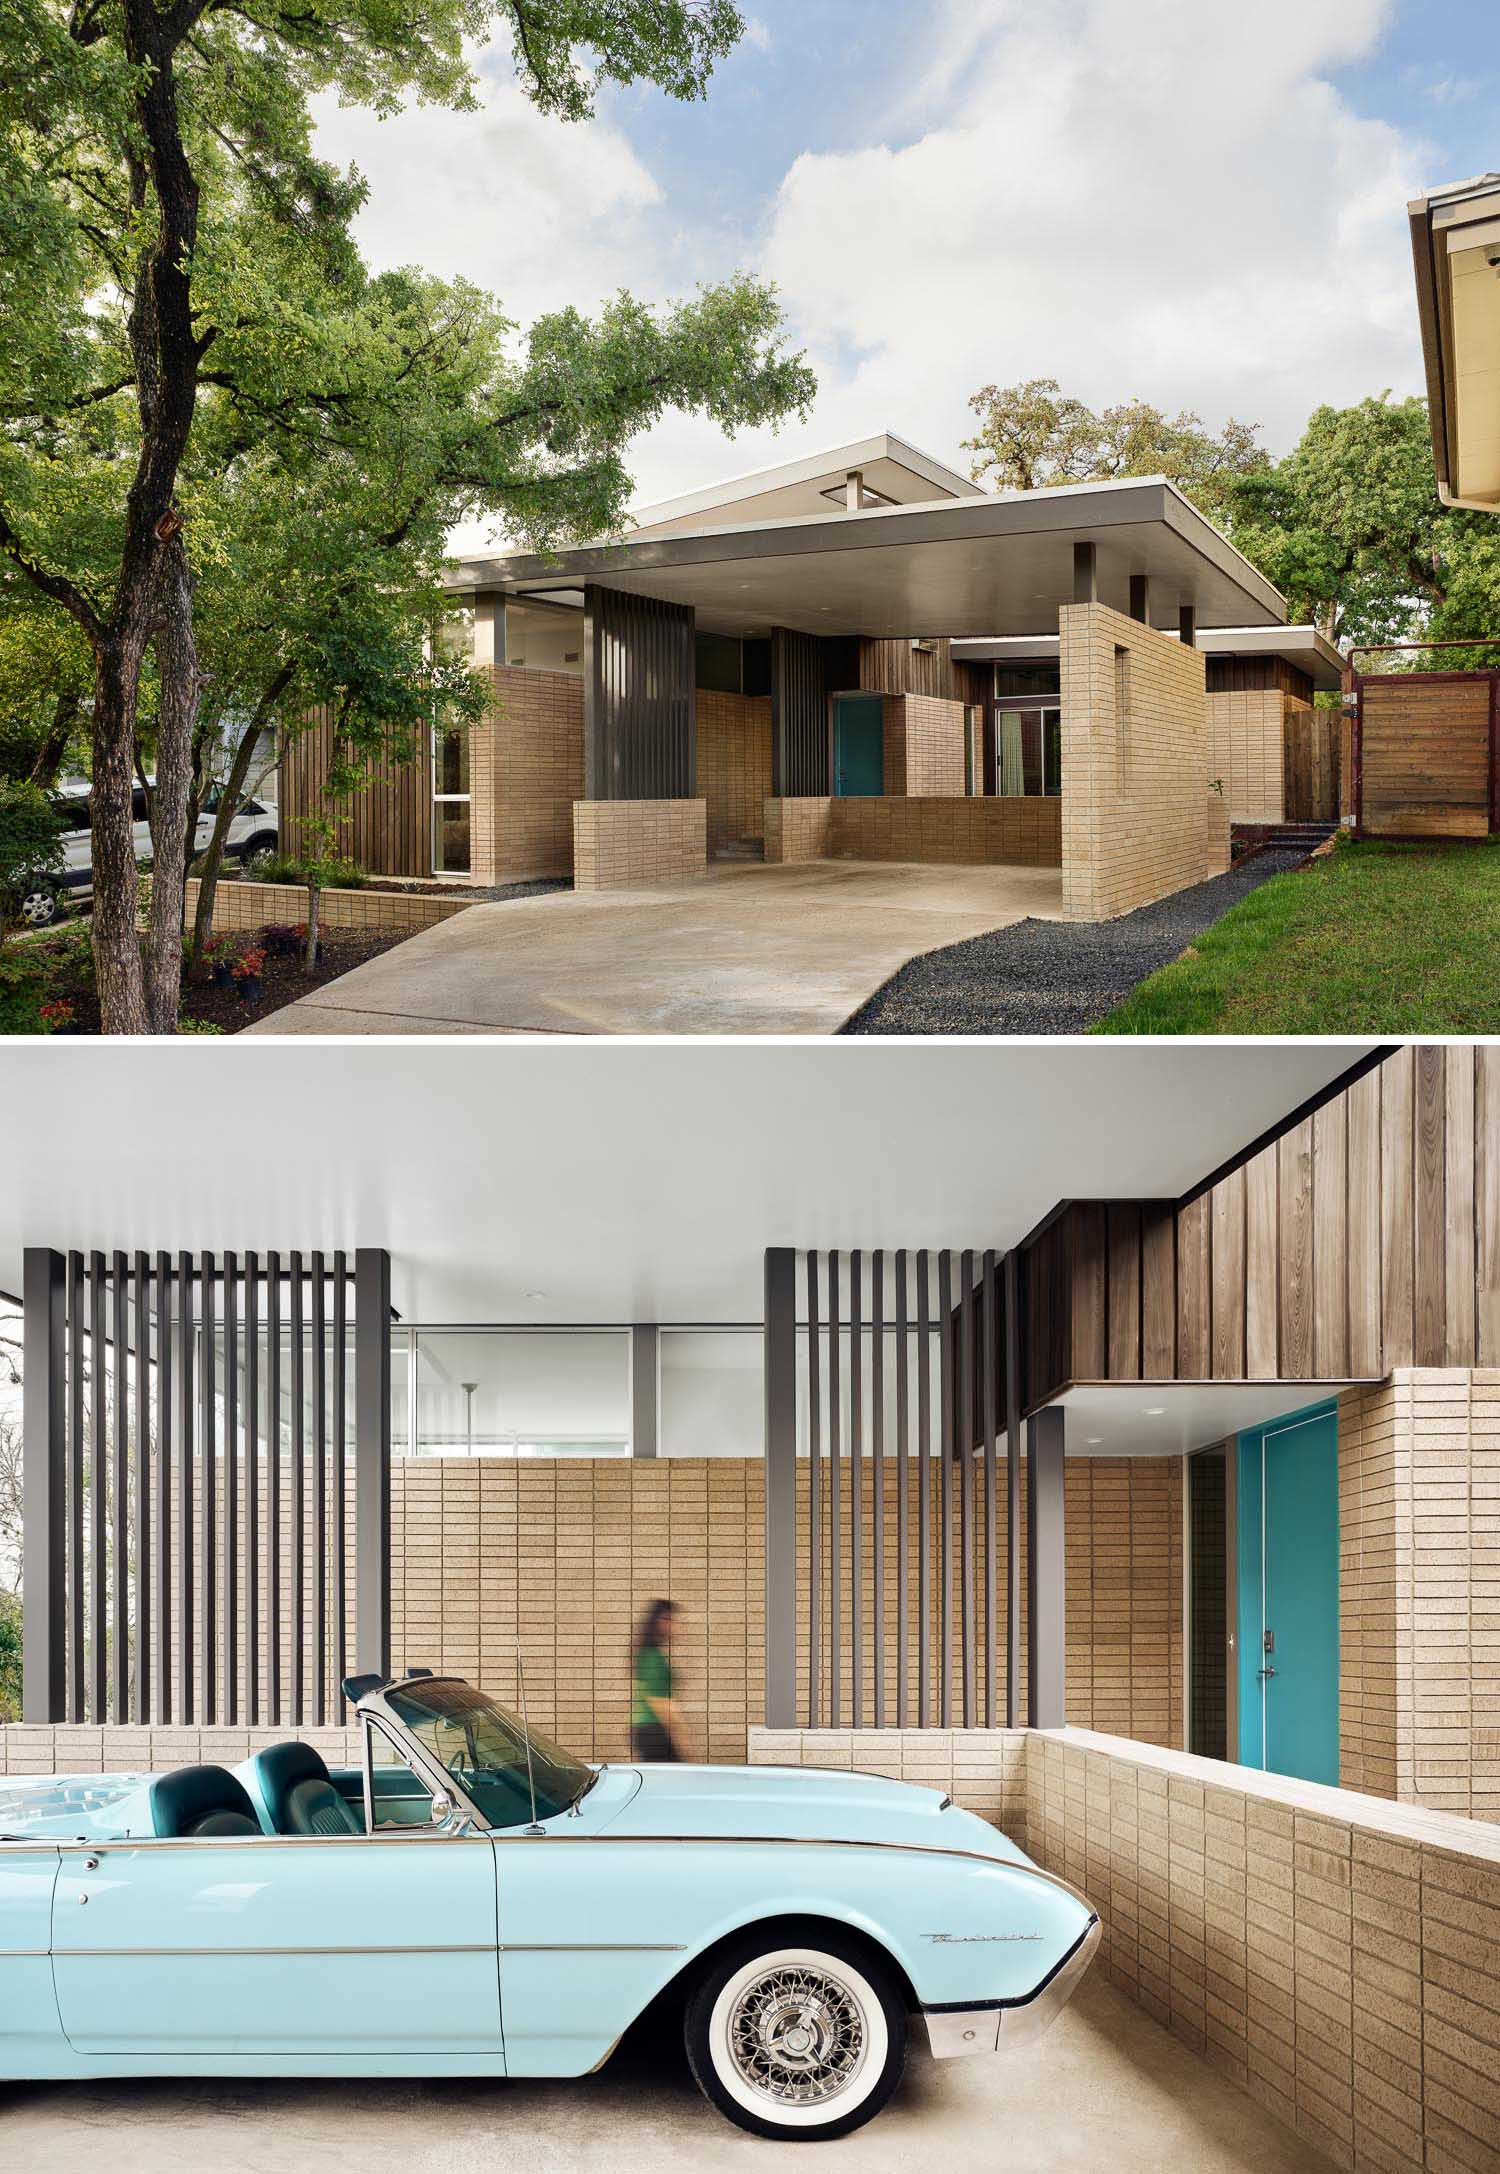 A mid-century modern inspired home with a turquoise front door and a carport.